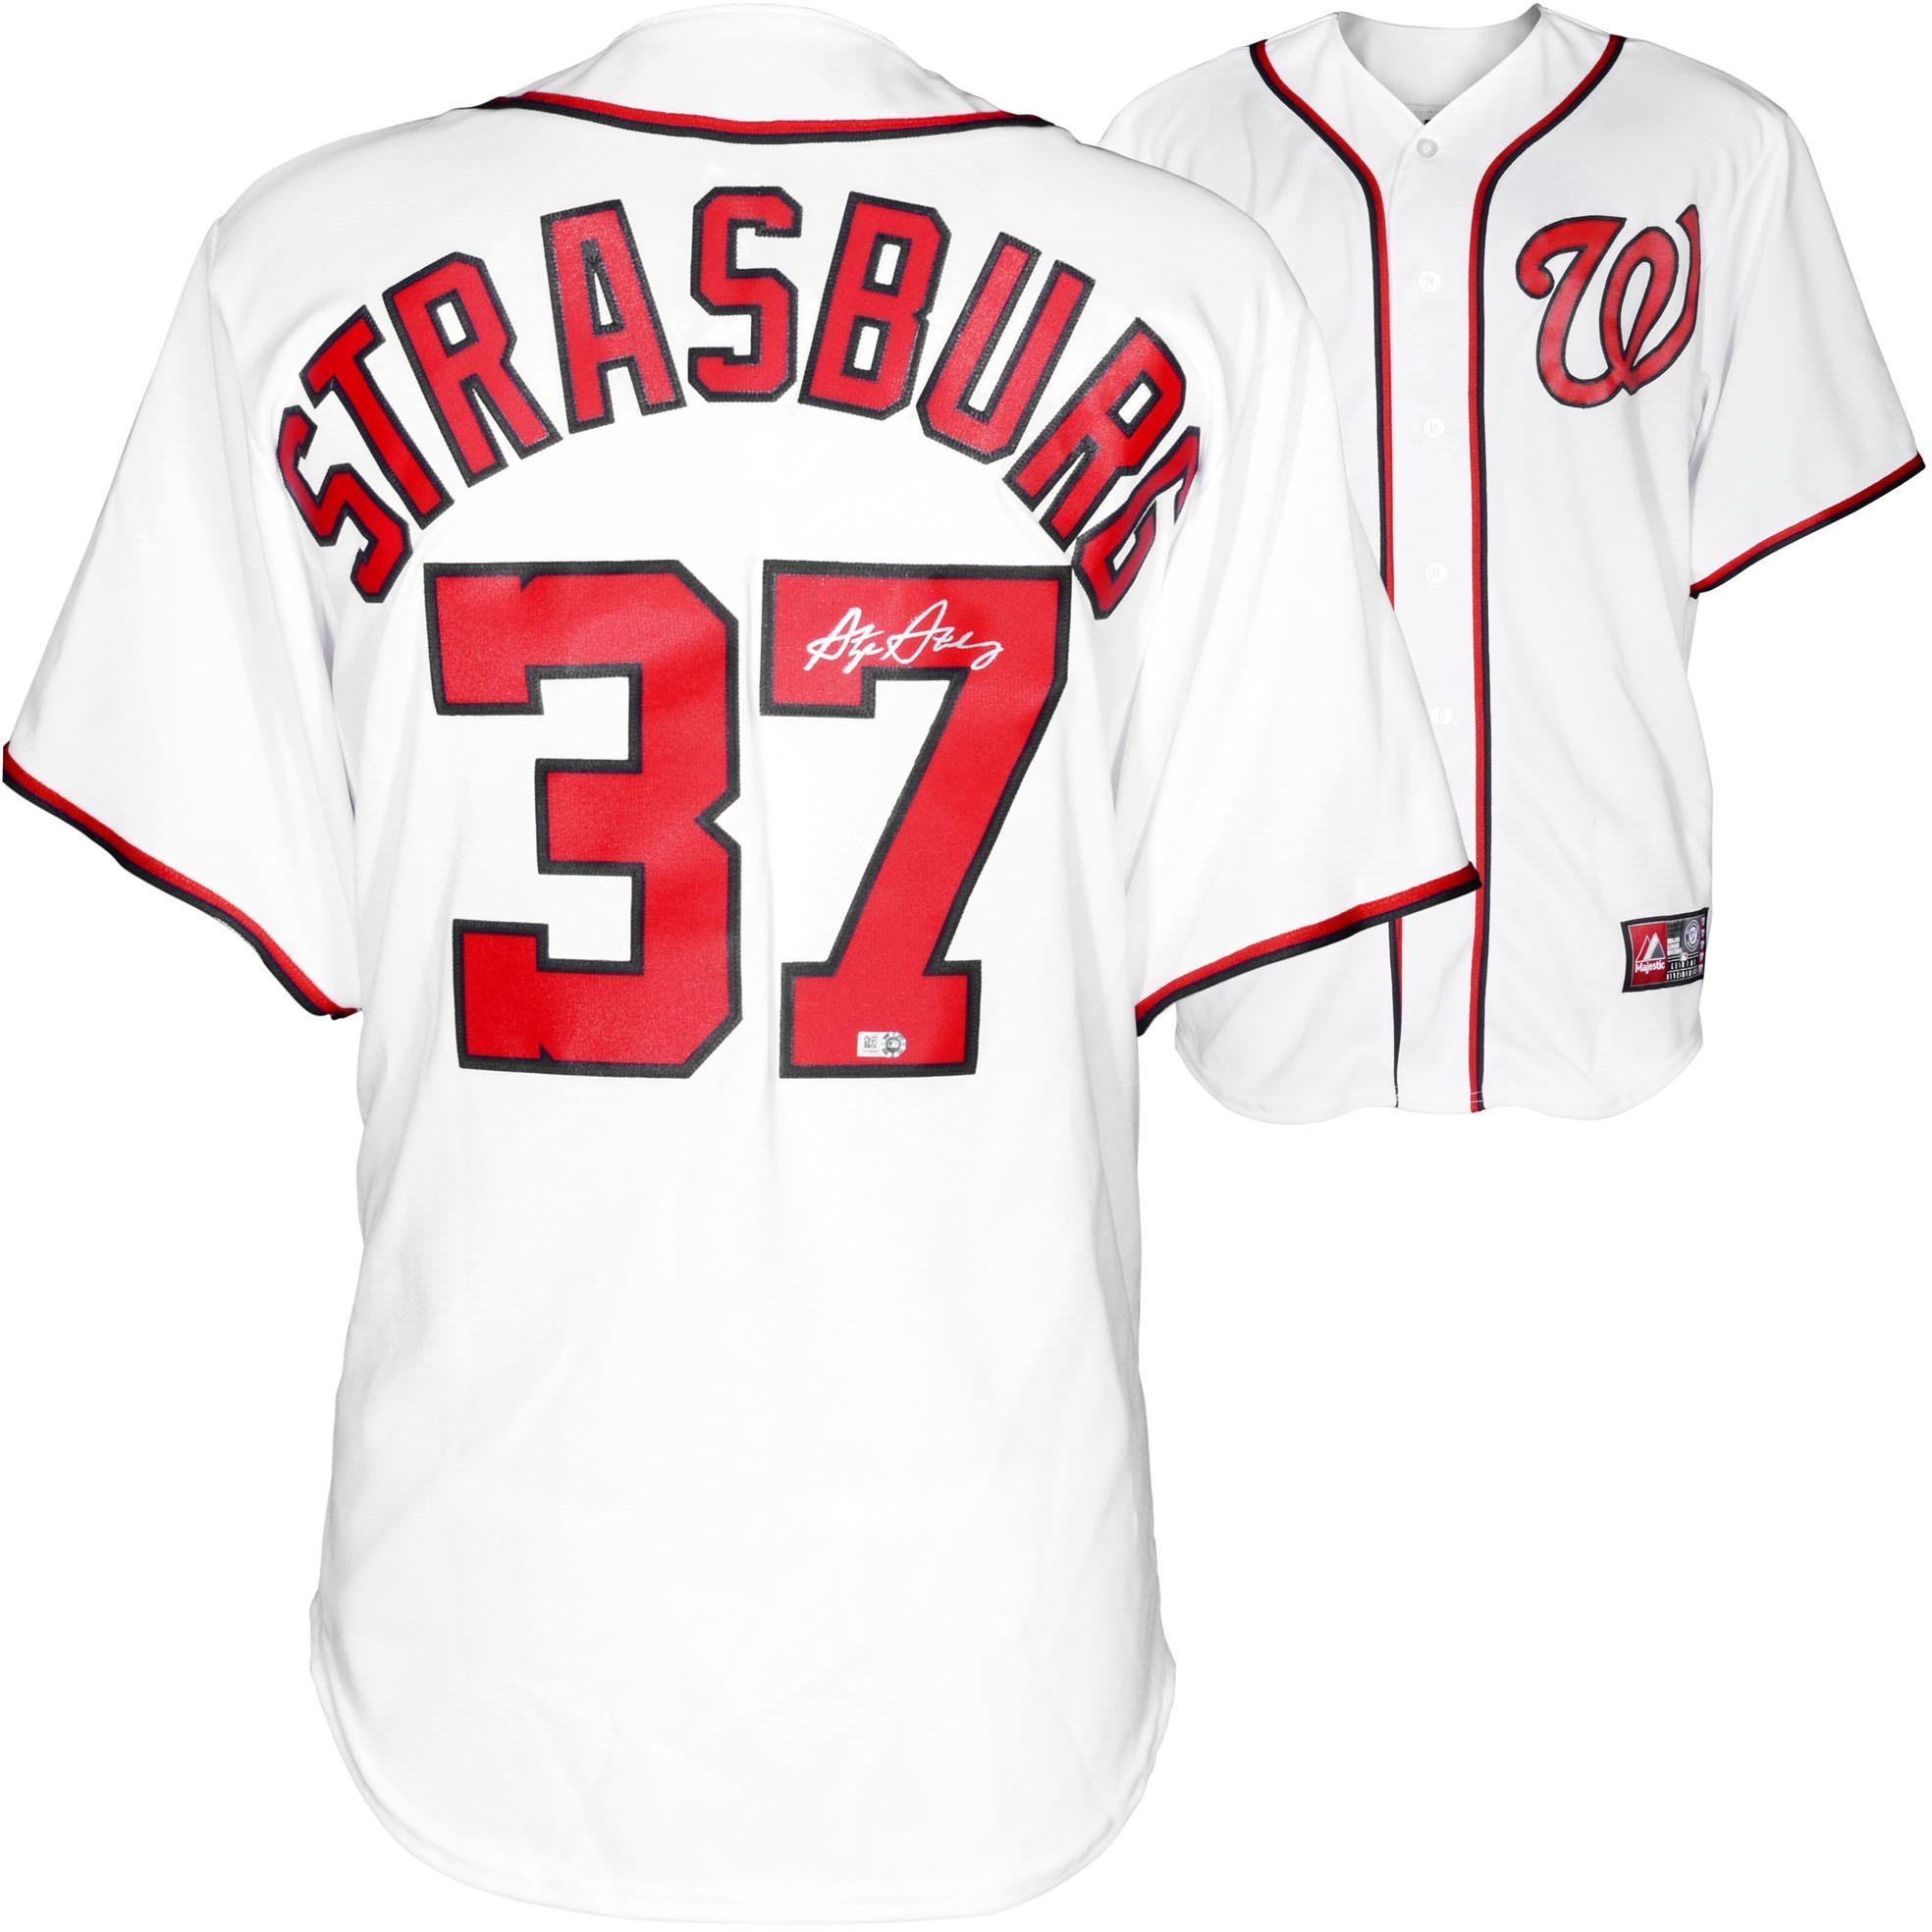 MLB - Stephen Strasburg Autographed Jersey | Details: Washington Nationals, Majestic